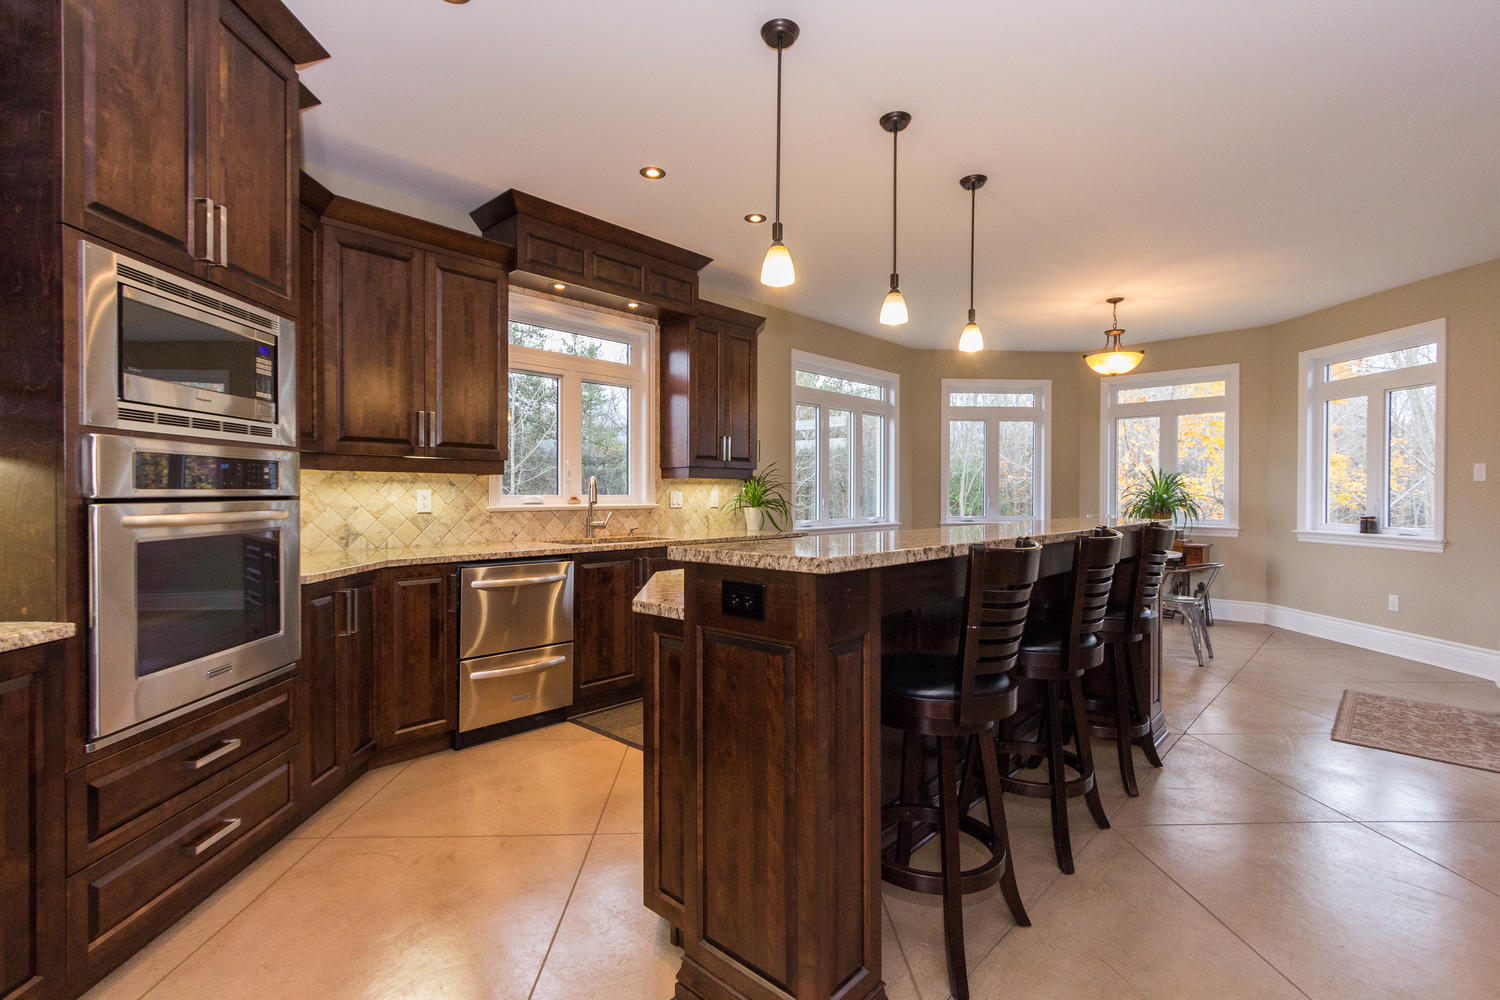 Absolutely beautiful open kitchen with granite counters, rich dark cabinetry, stainless steel appliances, huge island with breakfast bar, and a large bright eating area.